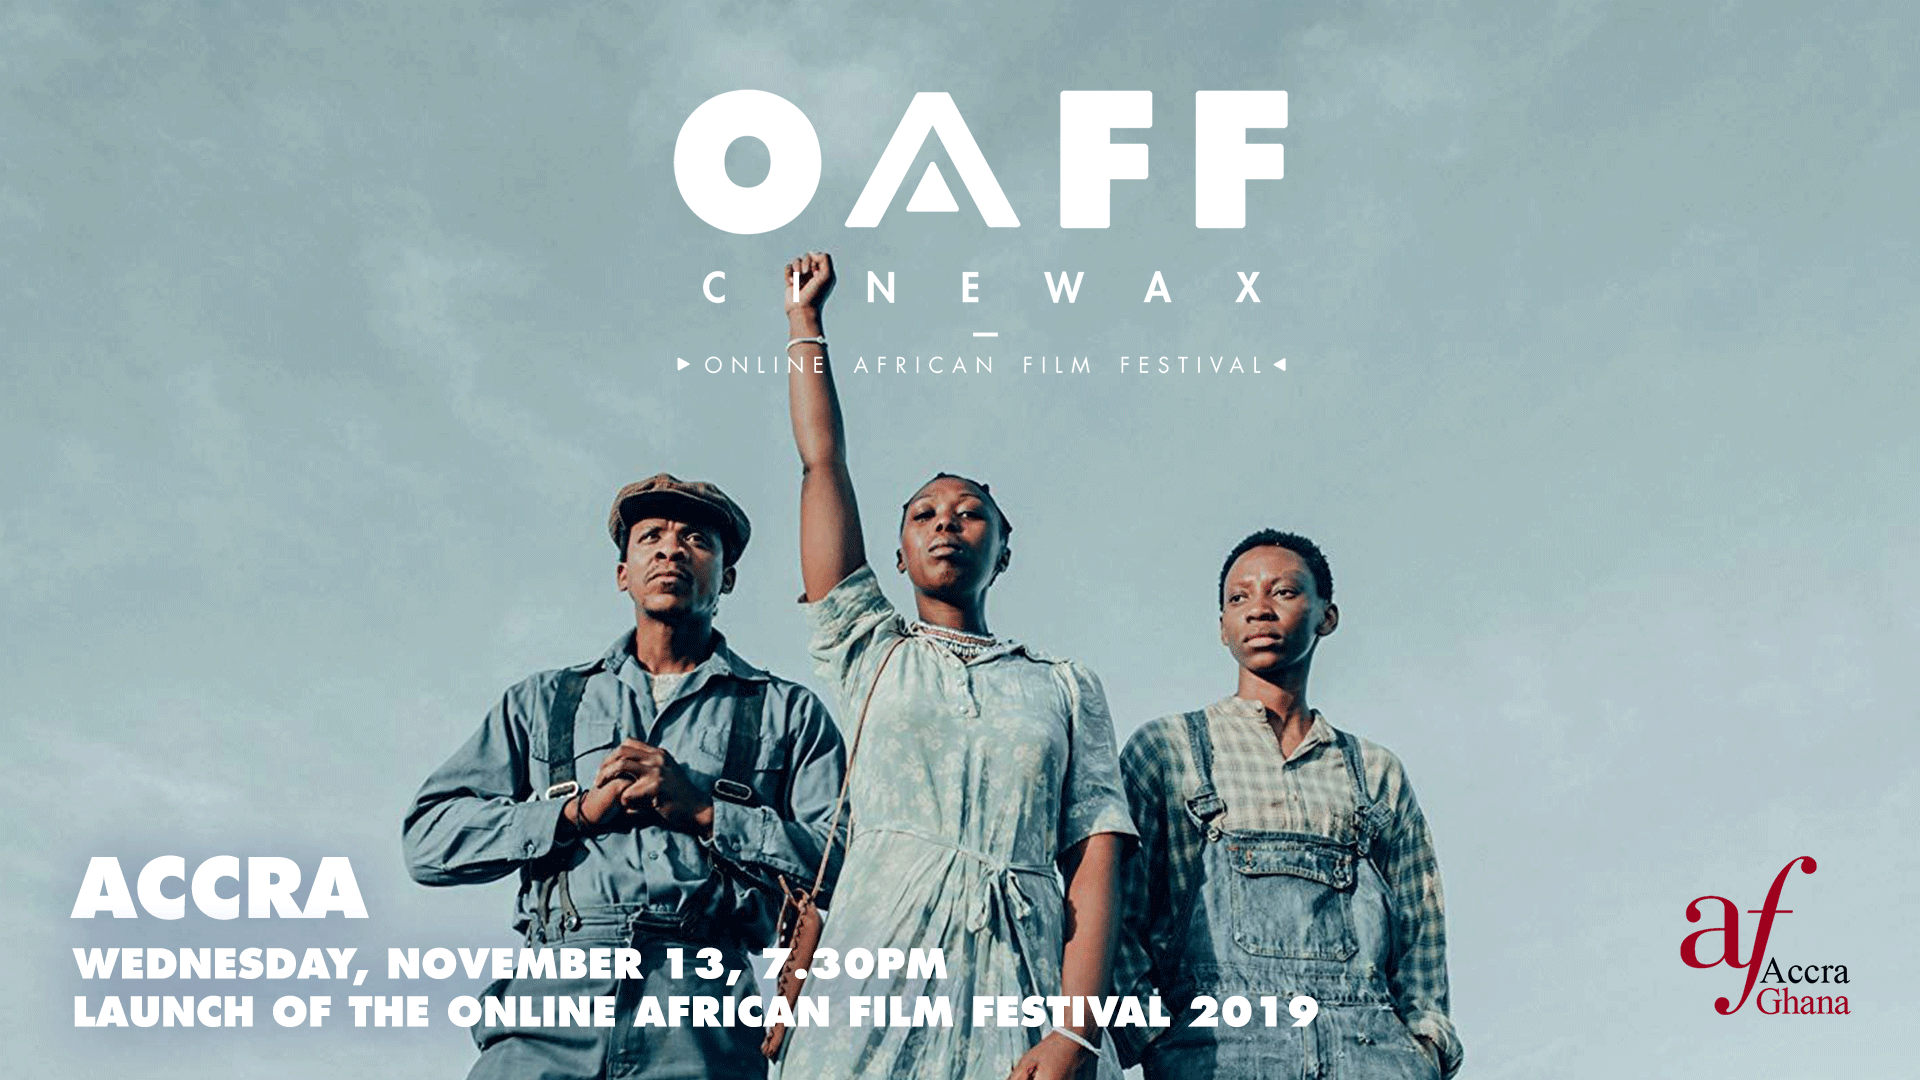 Cinewax Online African Film Festival  Ghana launch set for November 13